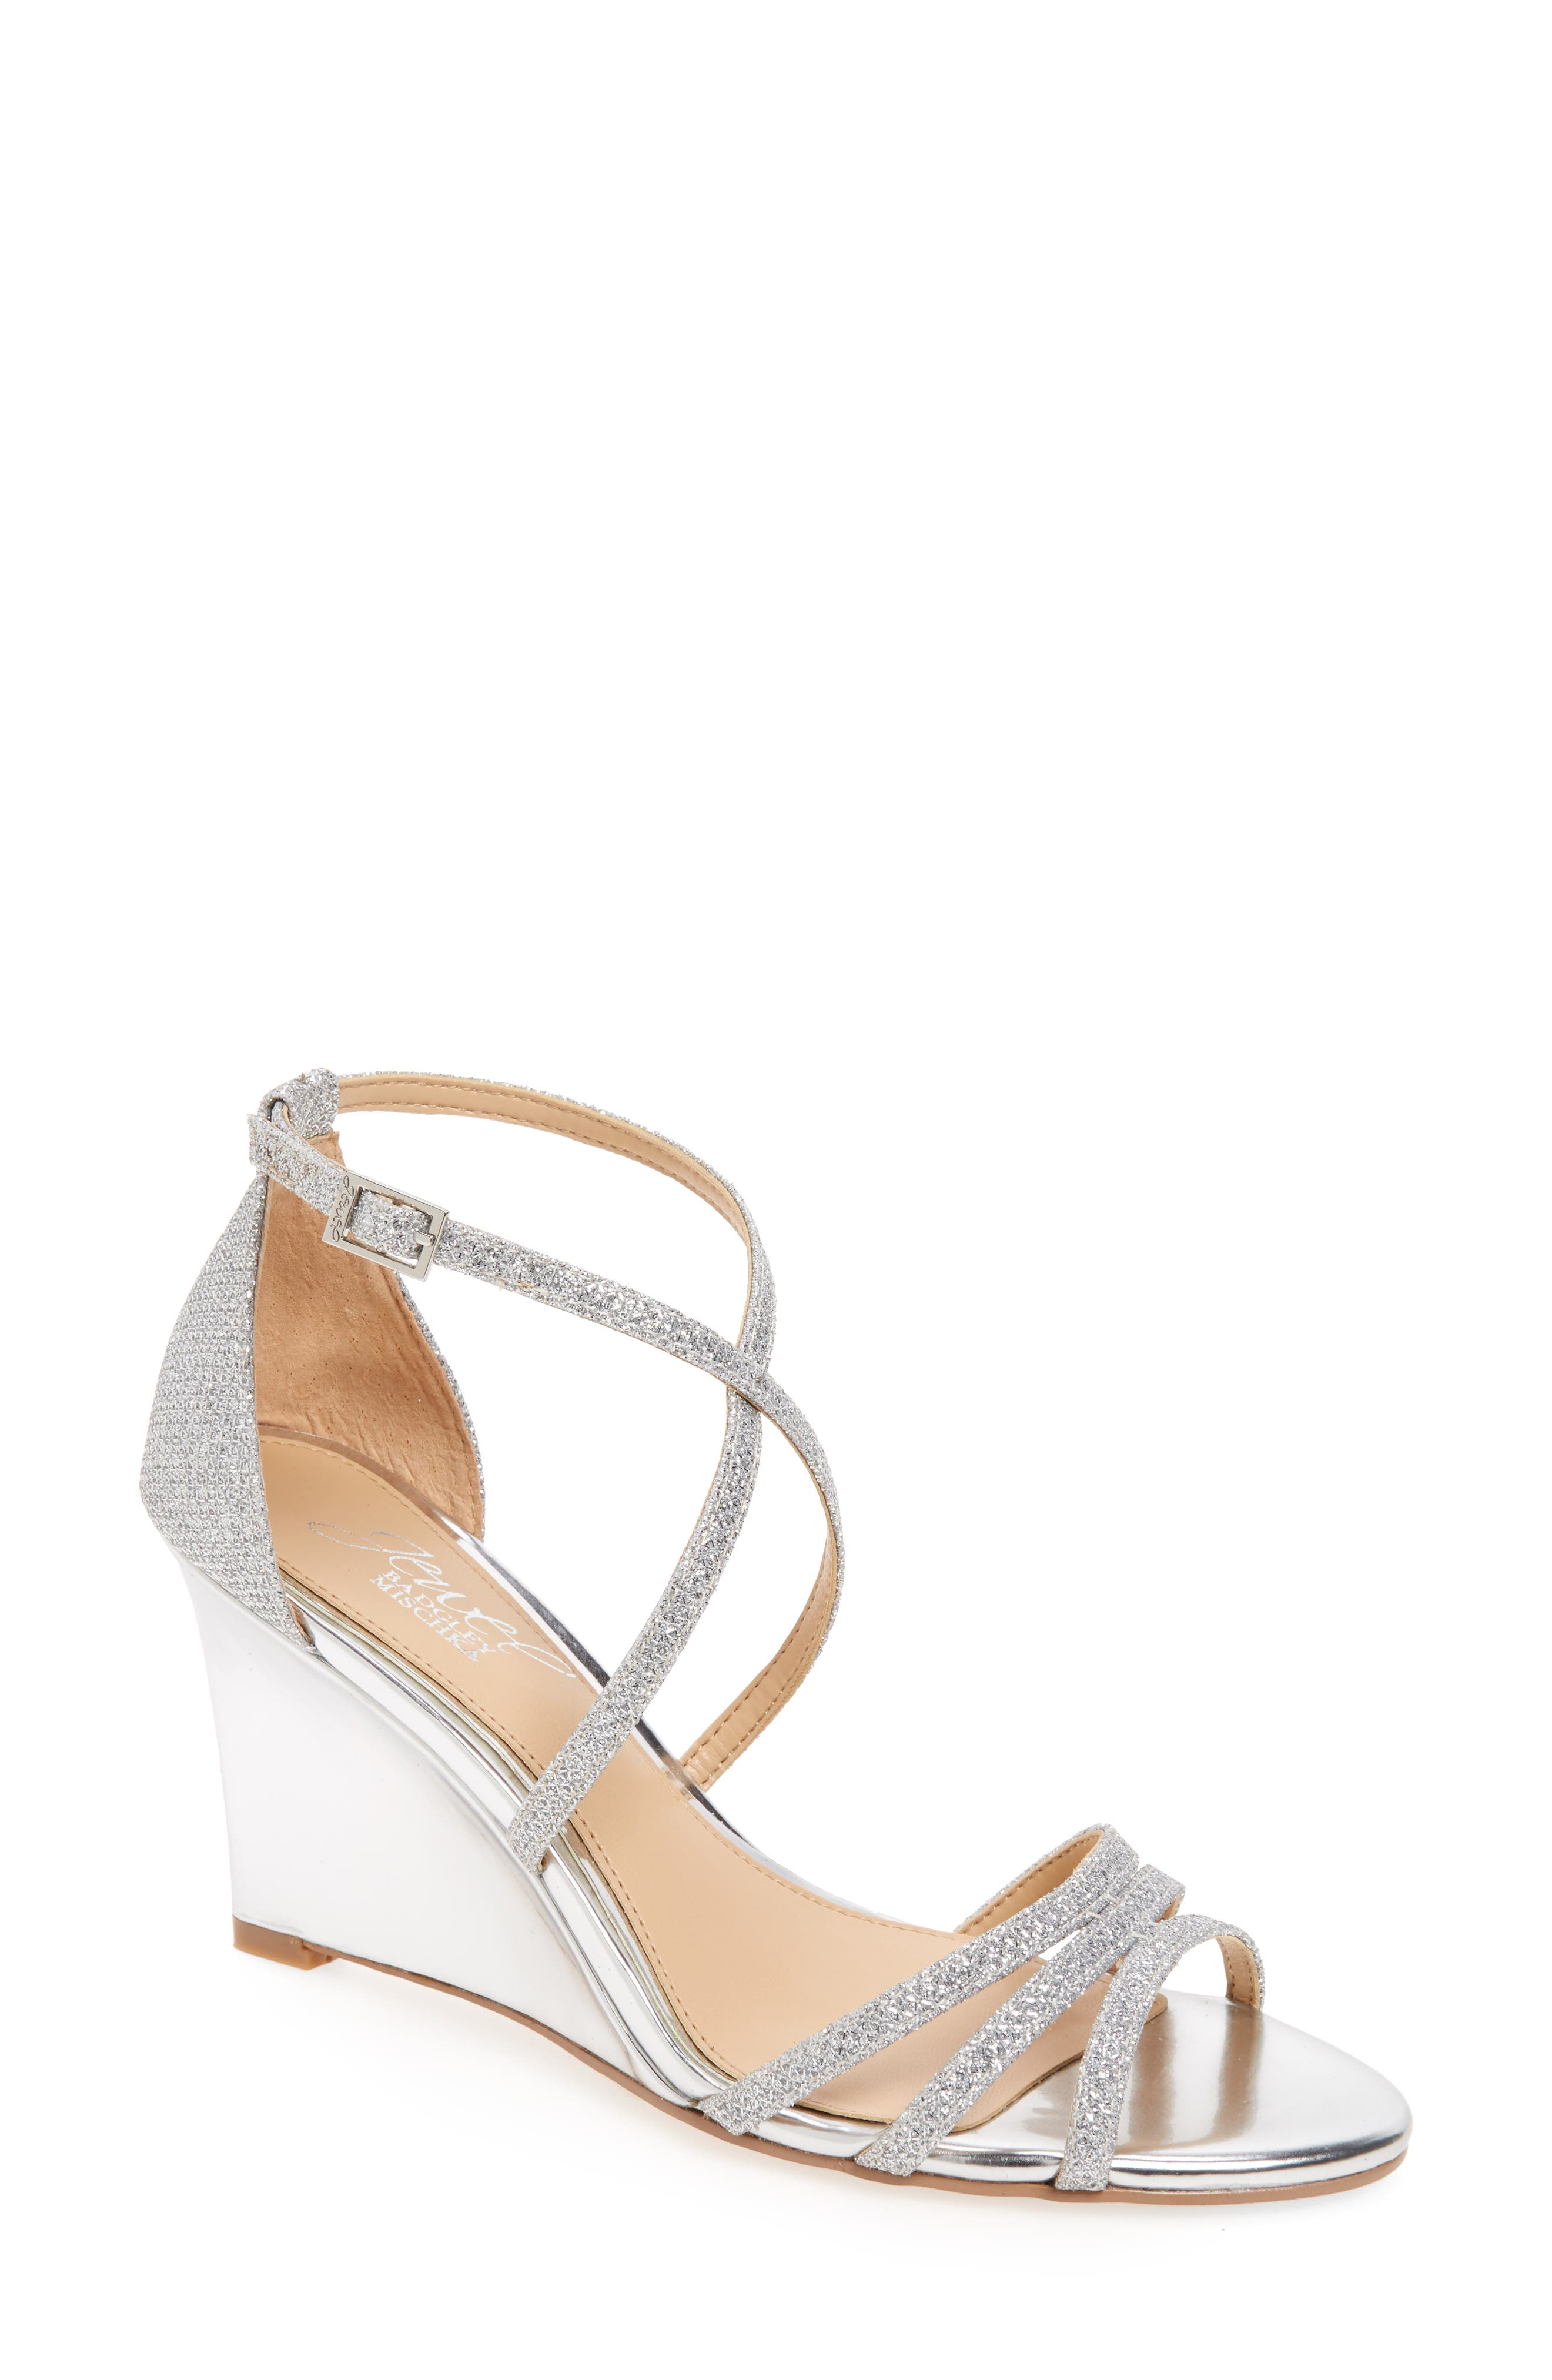 Hunt Glittery Wedge Sandal,                         Main,                         color, SILVER GLITTER FABRIC